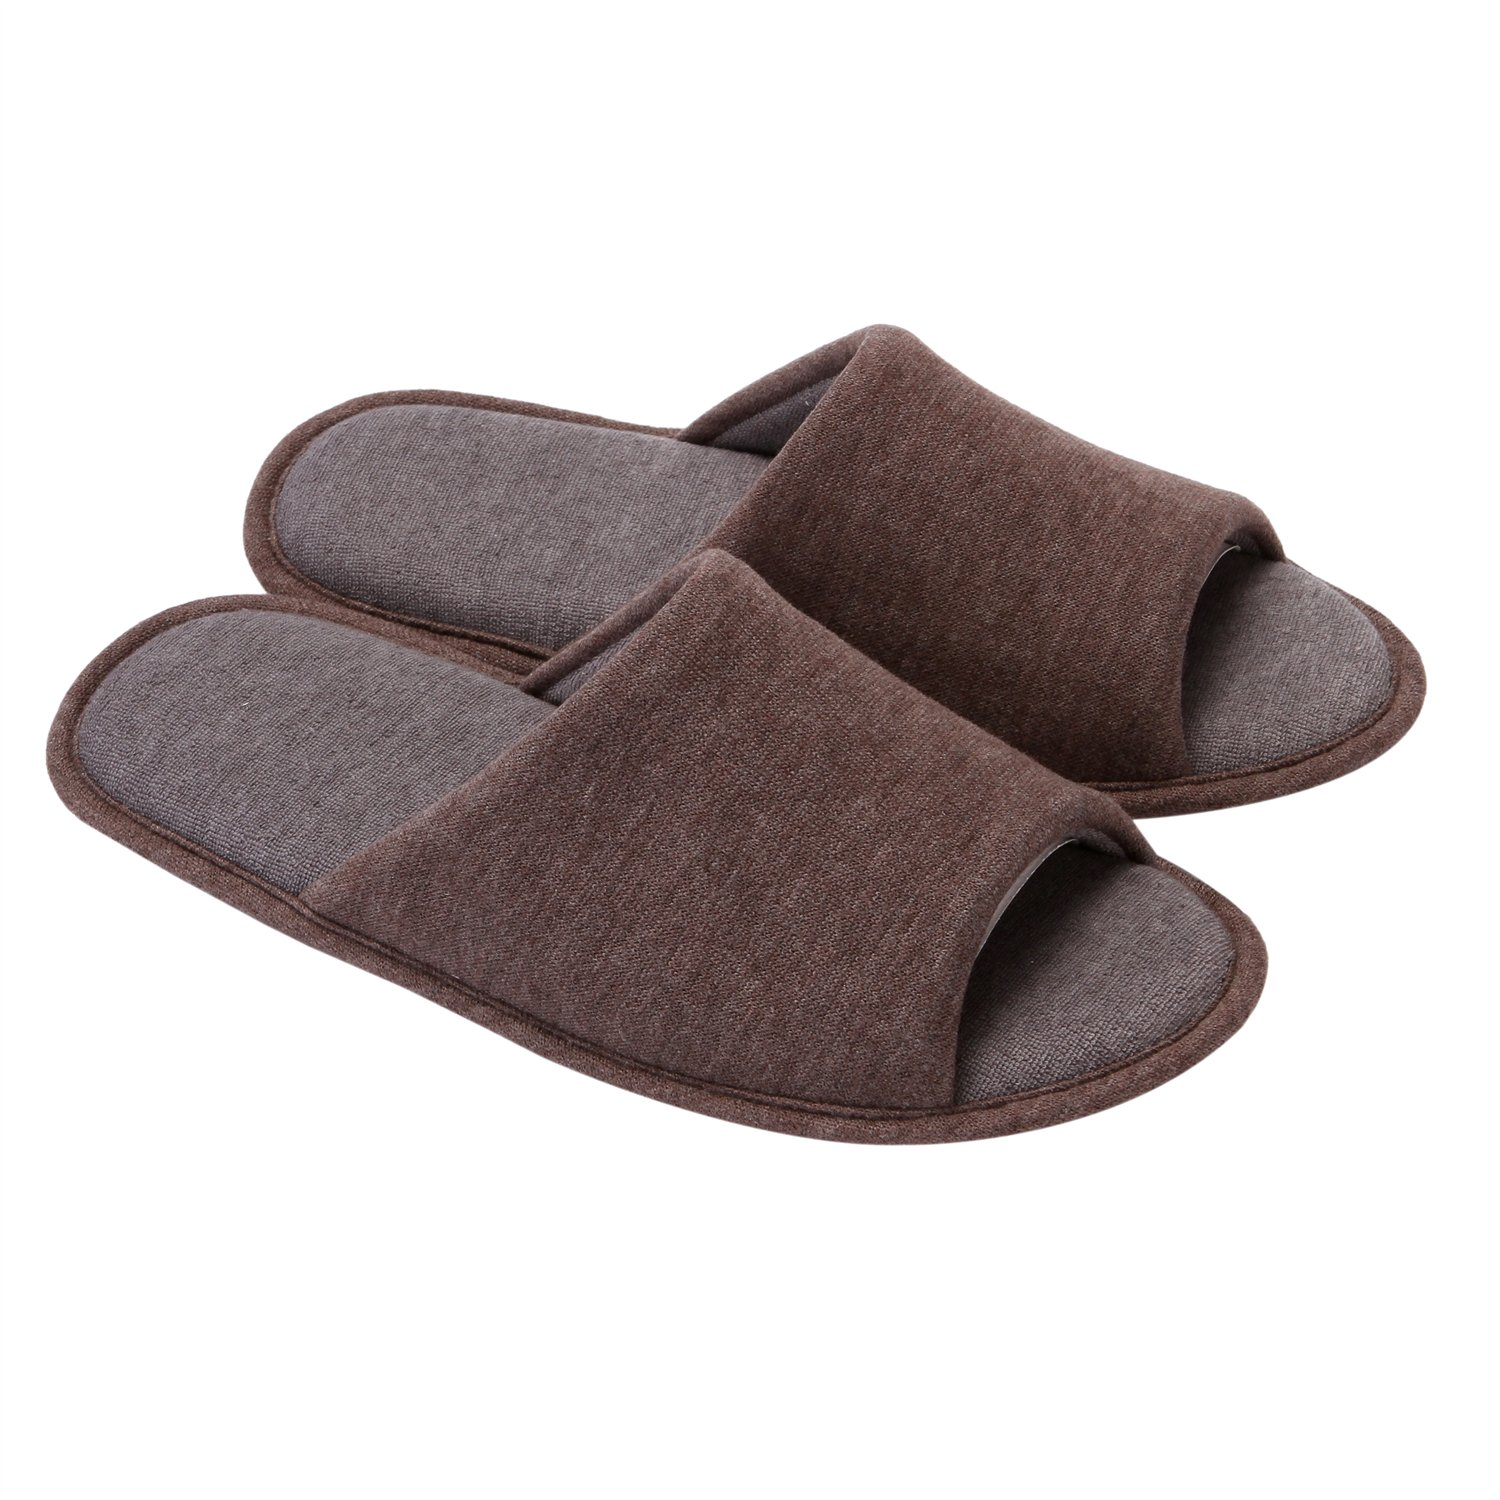 Holeco Cotton Flax Casual House Slippers Non-Slip Open Toe Sandals for Man